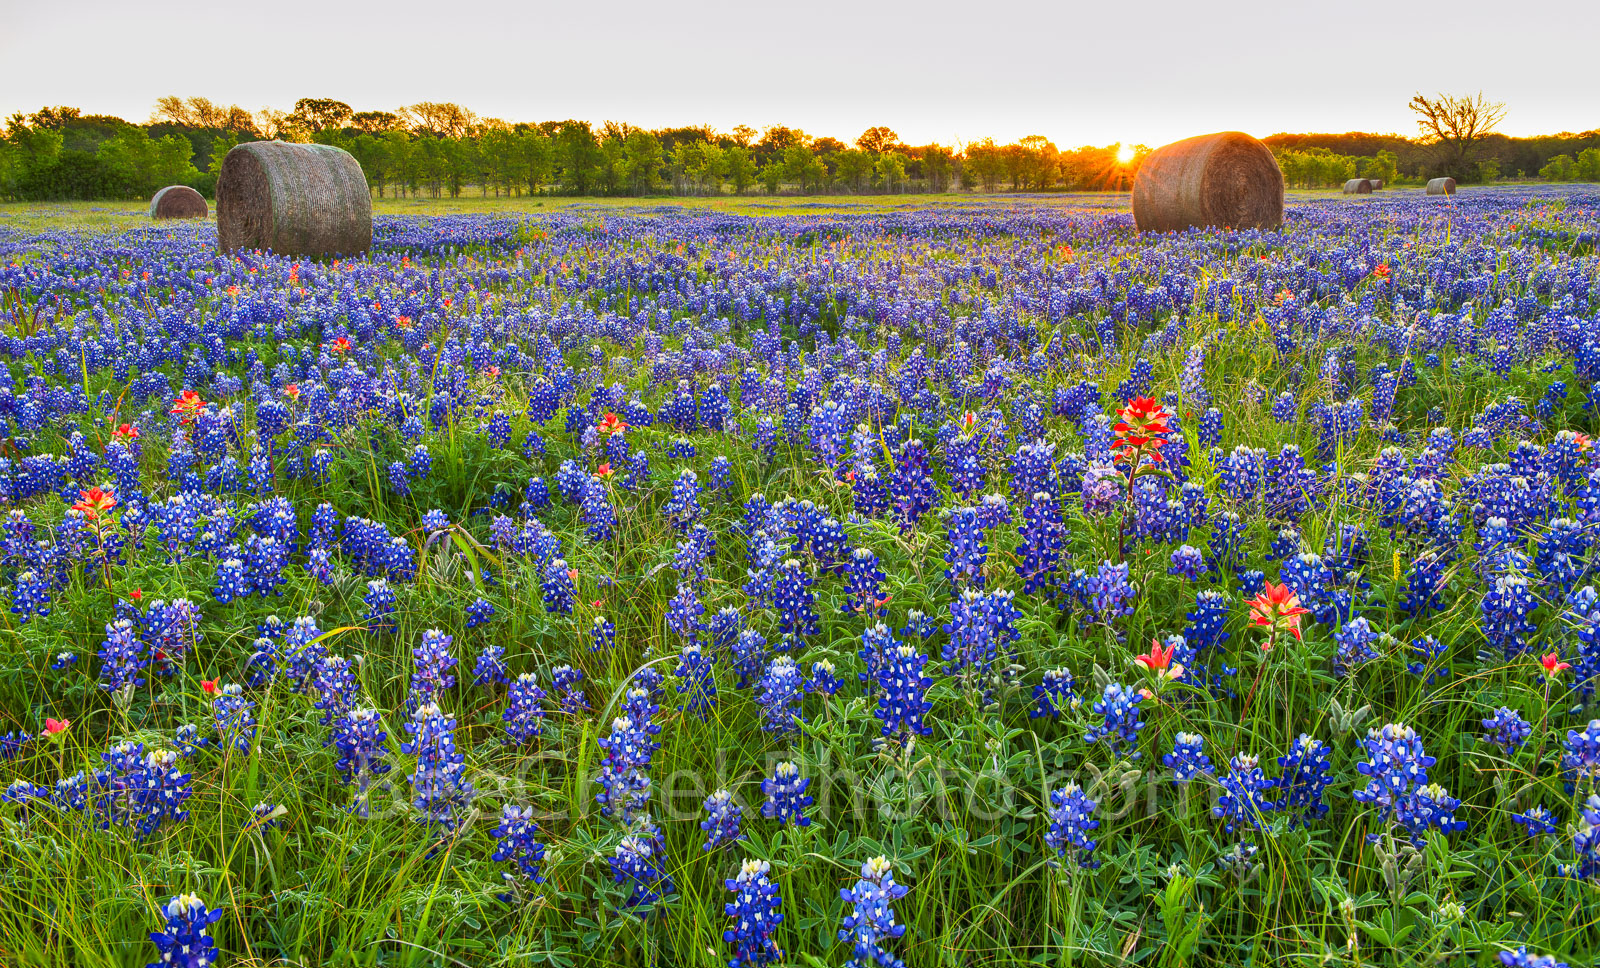 Texas bluebonnets, wildflowers, ranch, hay bales, sunrise, field of texas bluebonnets, indian paintbrush, sun rays, lupine, state flower of Texas, springtime, flower,, photo